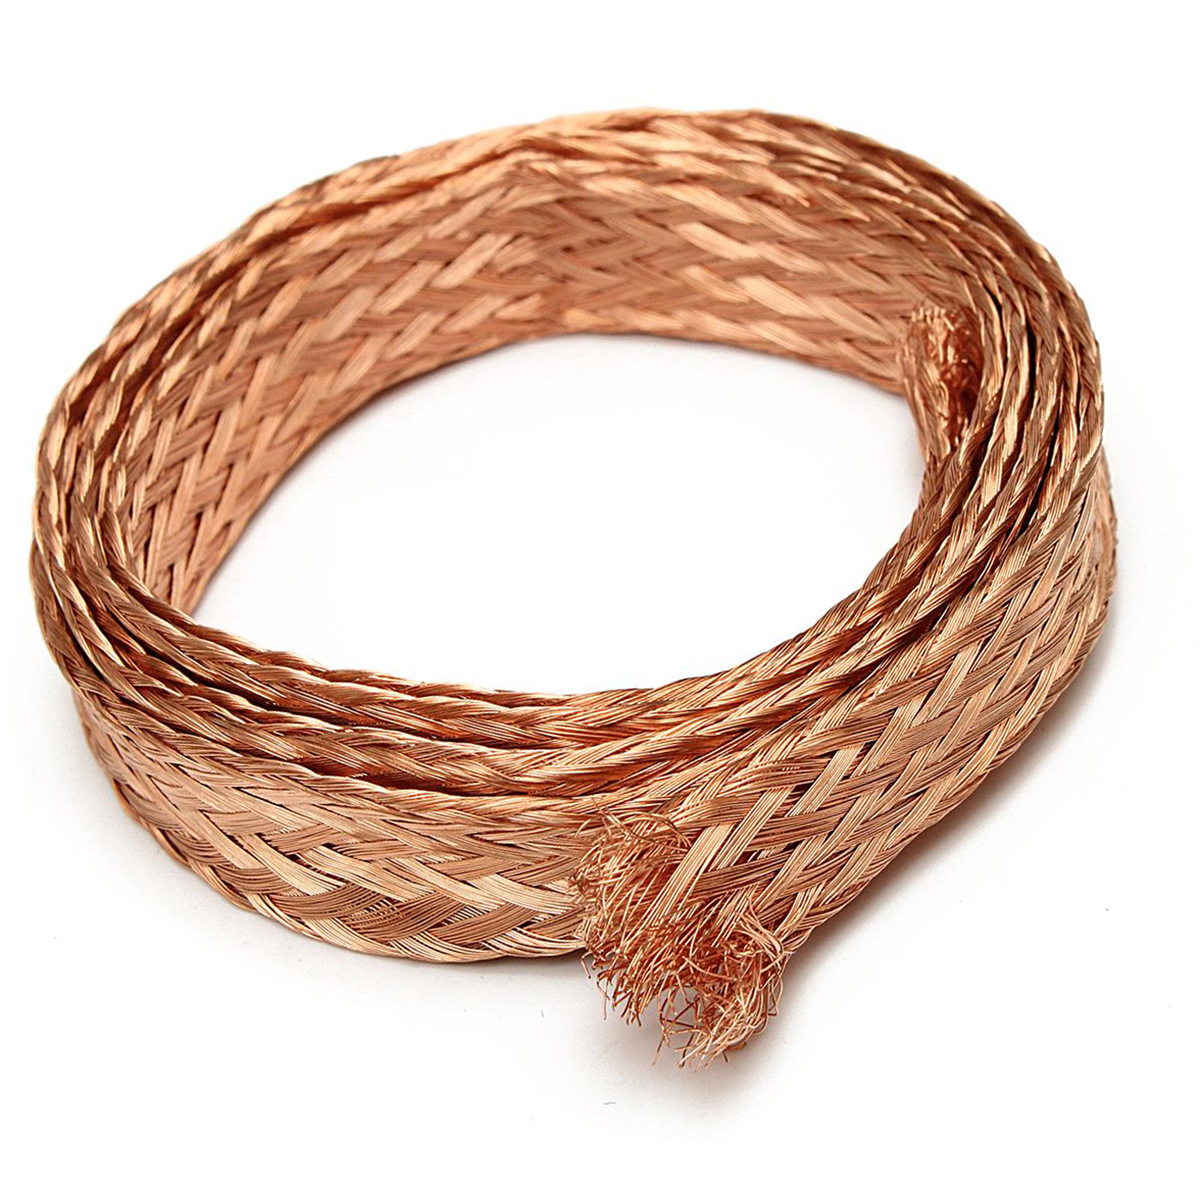 Flat Pure Copper Braid Cable Bare Ground Lead Copper Braid Wires 1m 3.3ft x 15mm 1m 15mm flat tinned copper braid sleeve screening tubular cable diy